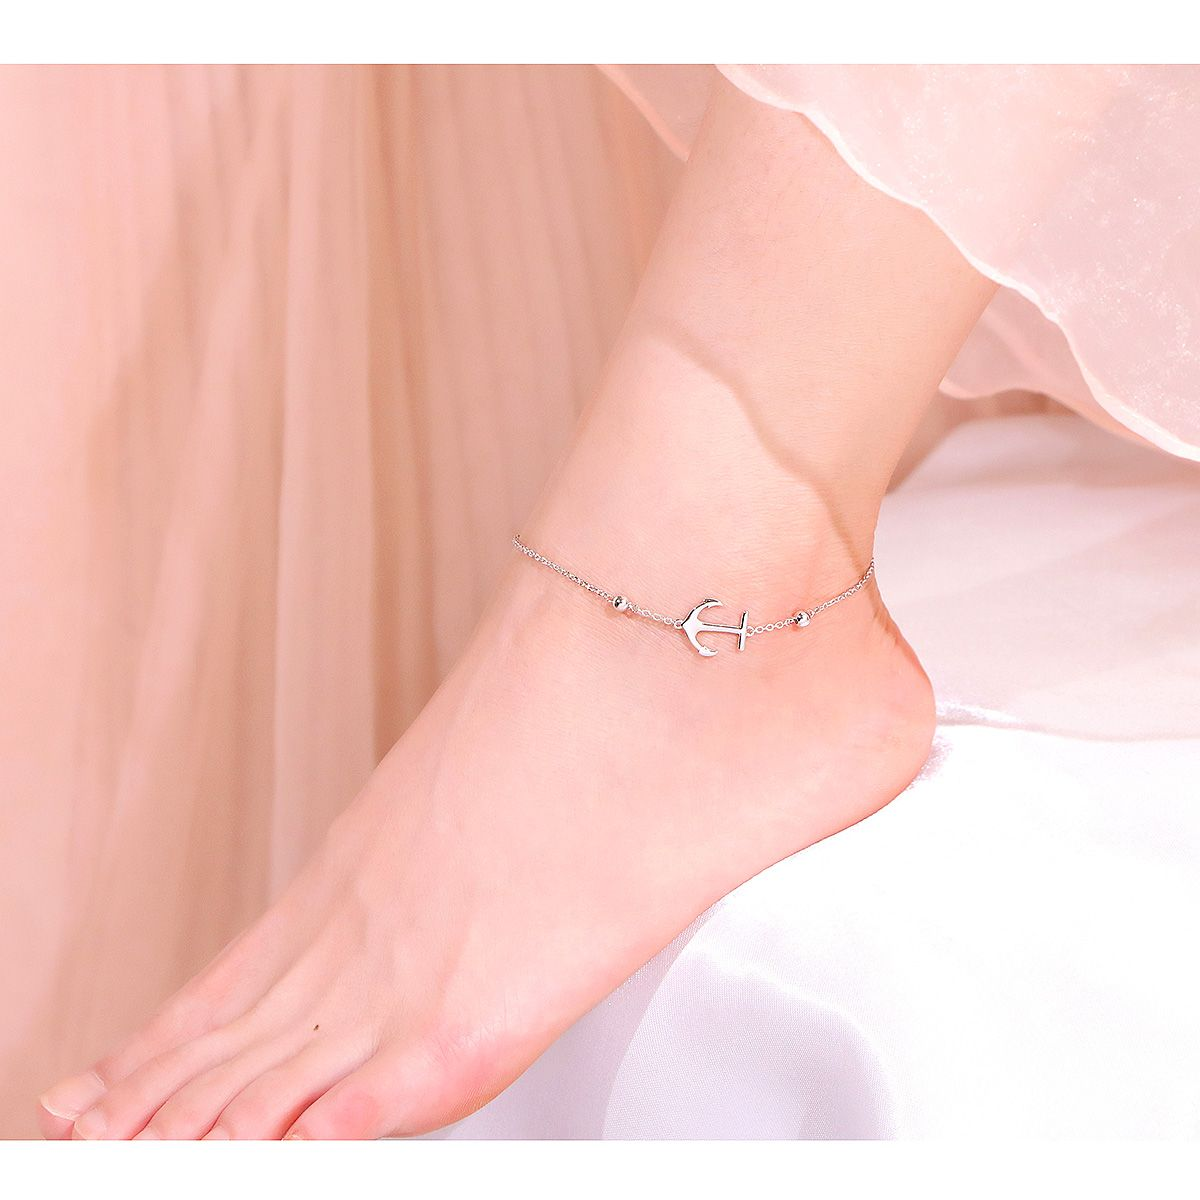 Silver boho ankle chain 925 Gift for her Boho Jewelry Women/'s Jewelry